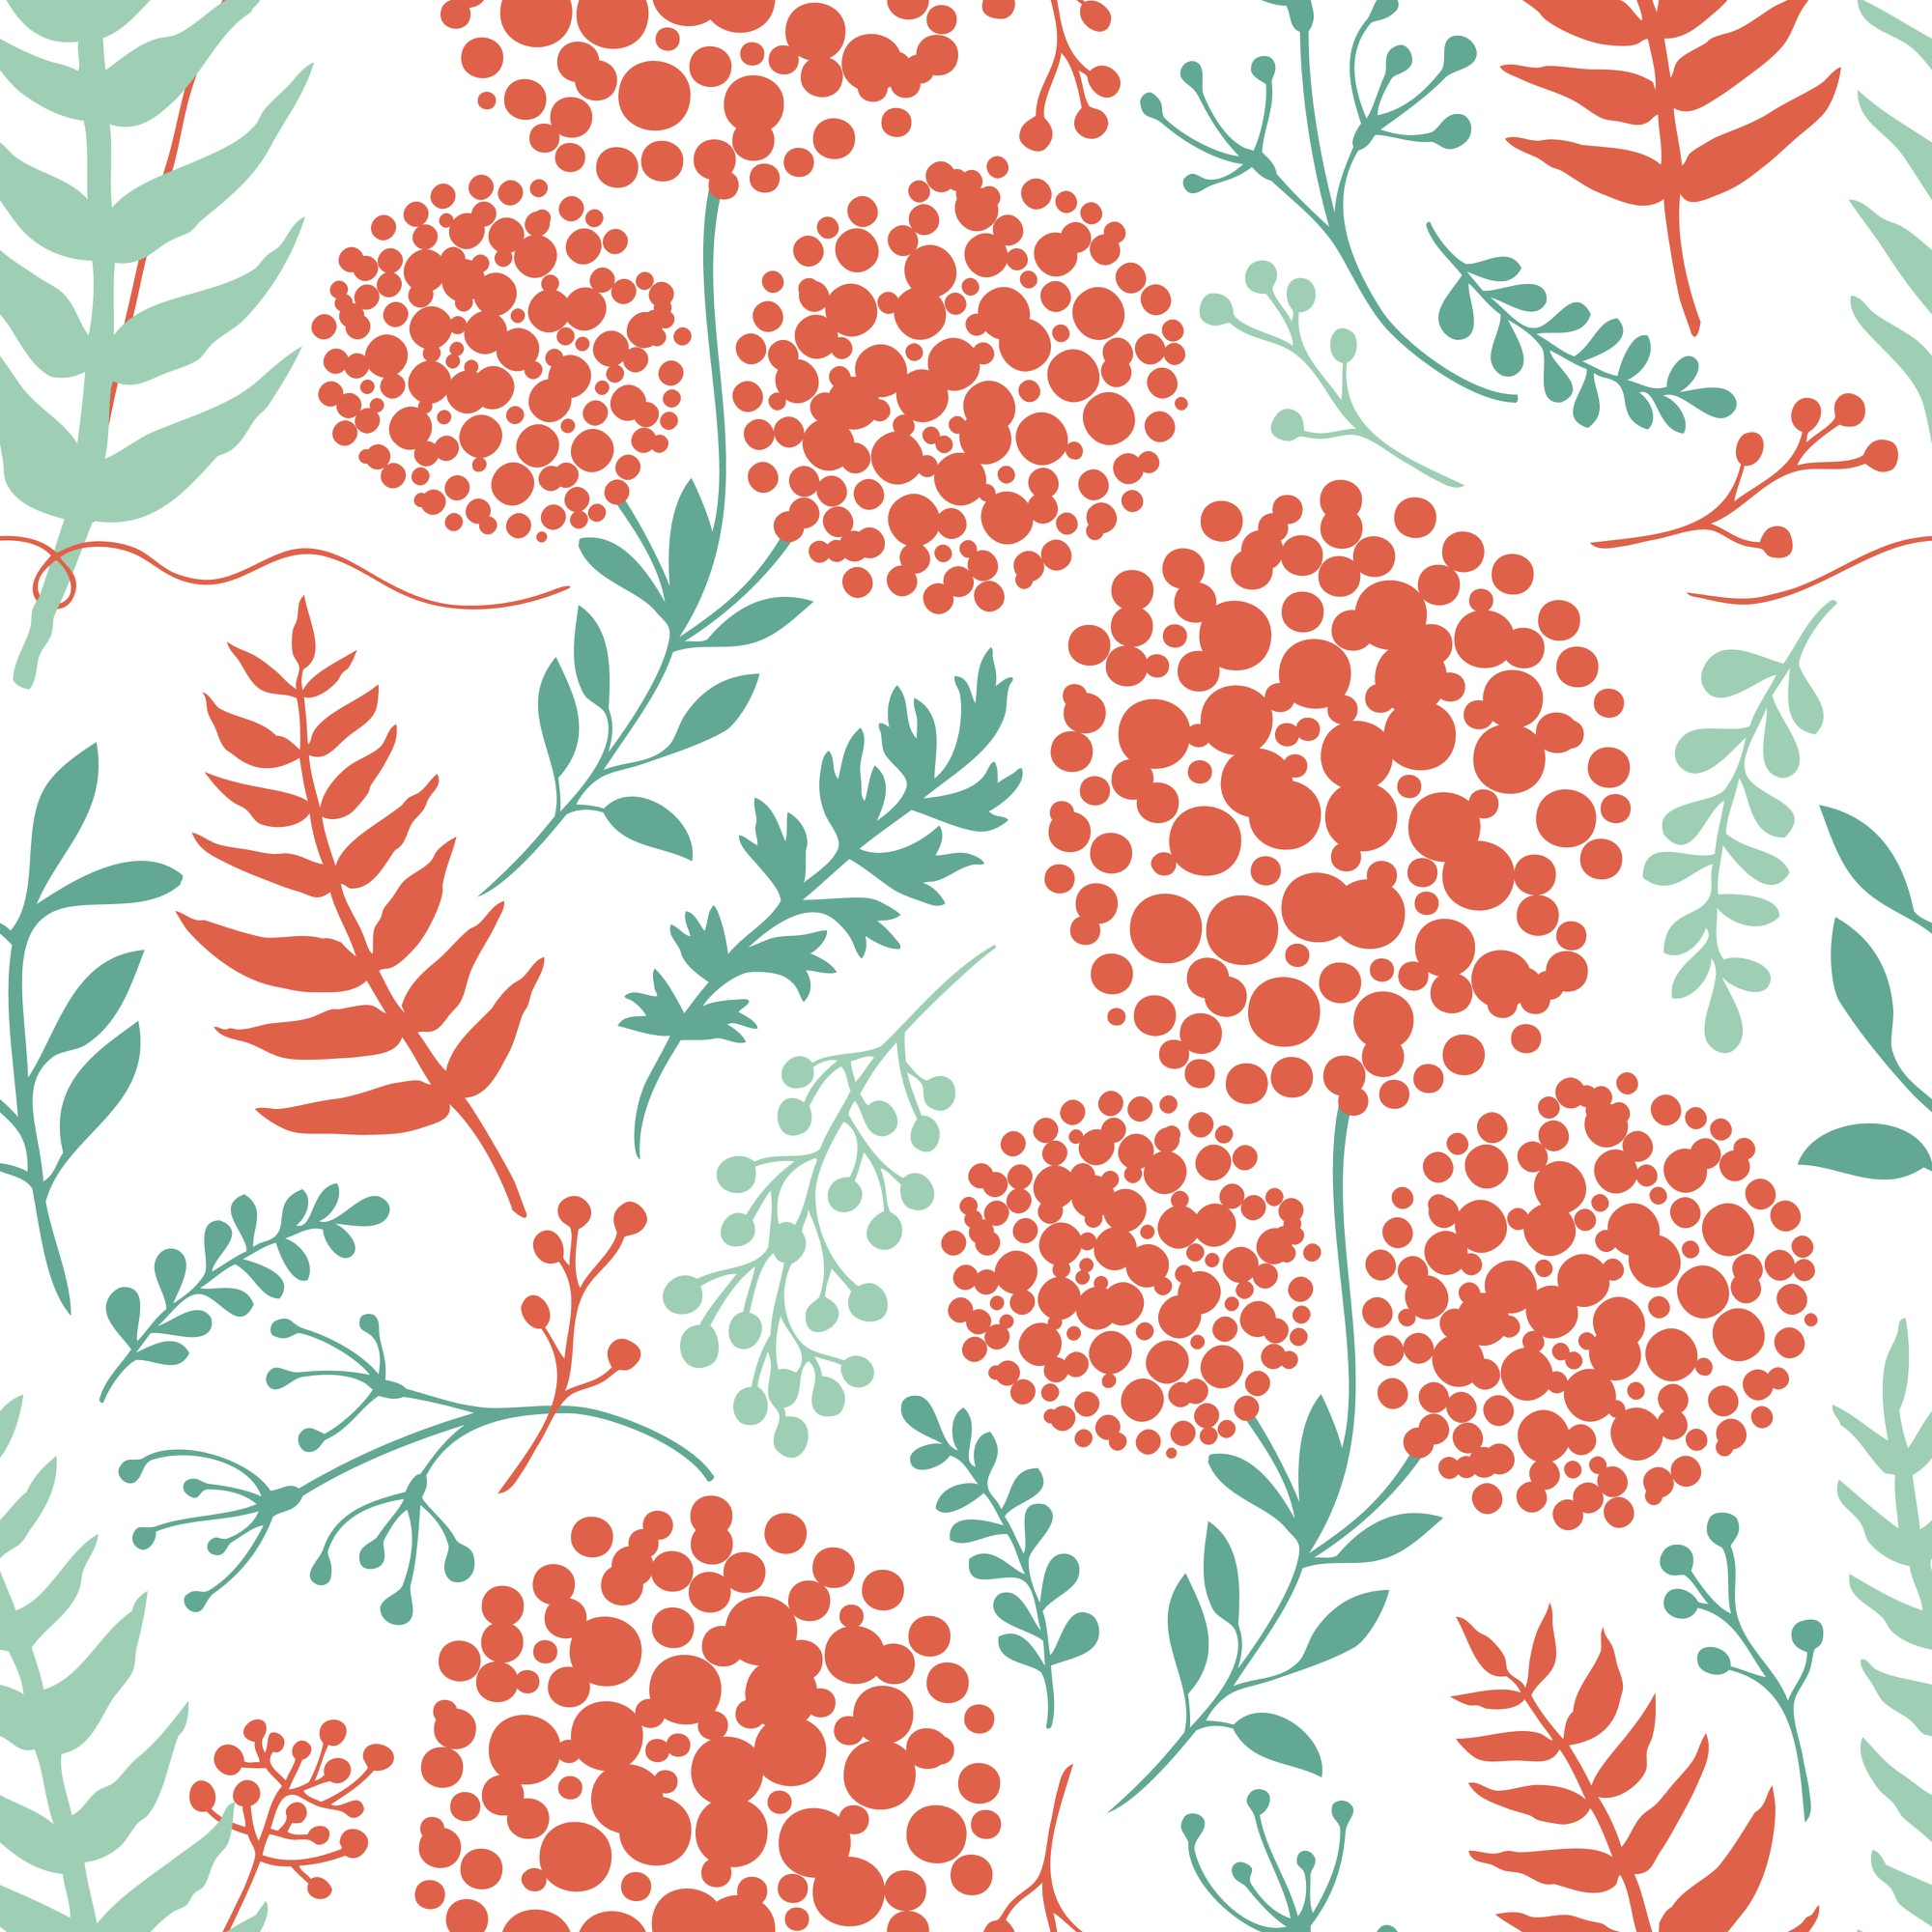 Abstract floral background with green and red fern leaves